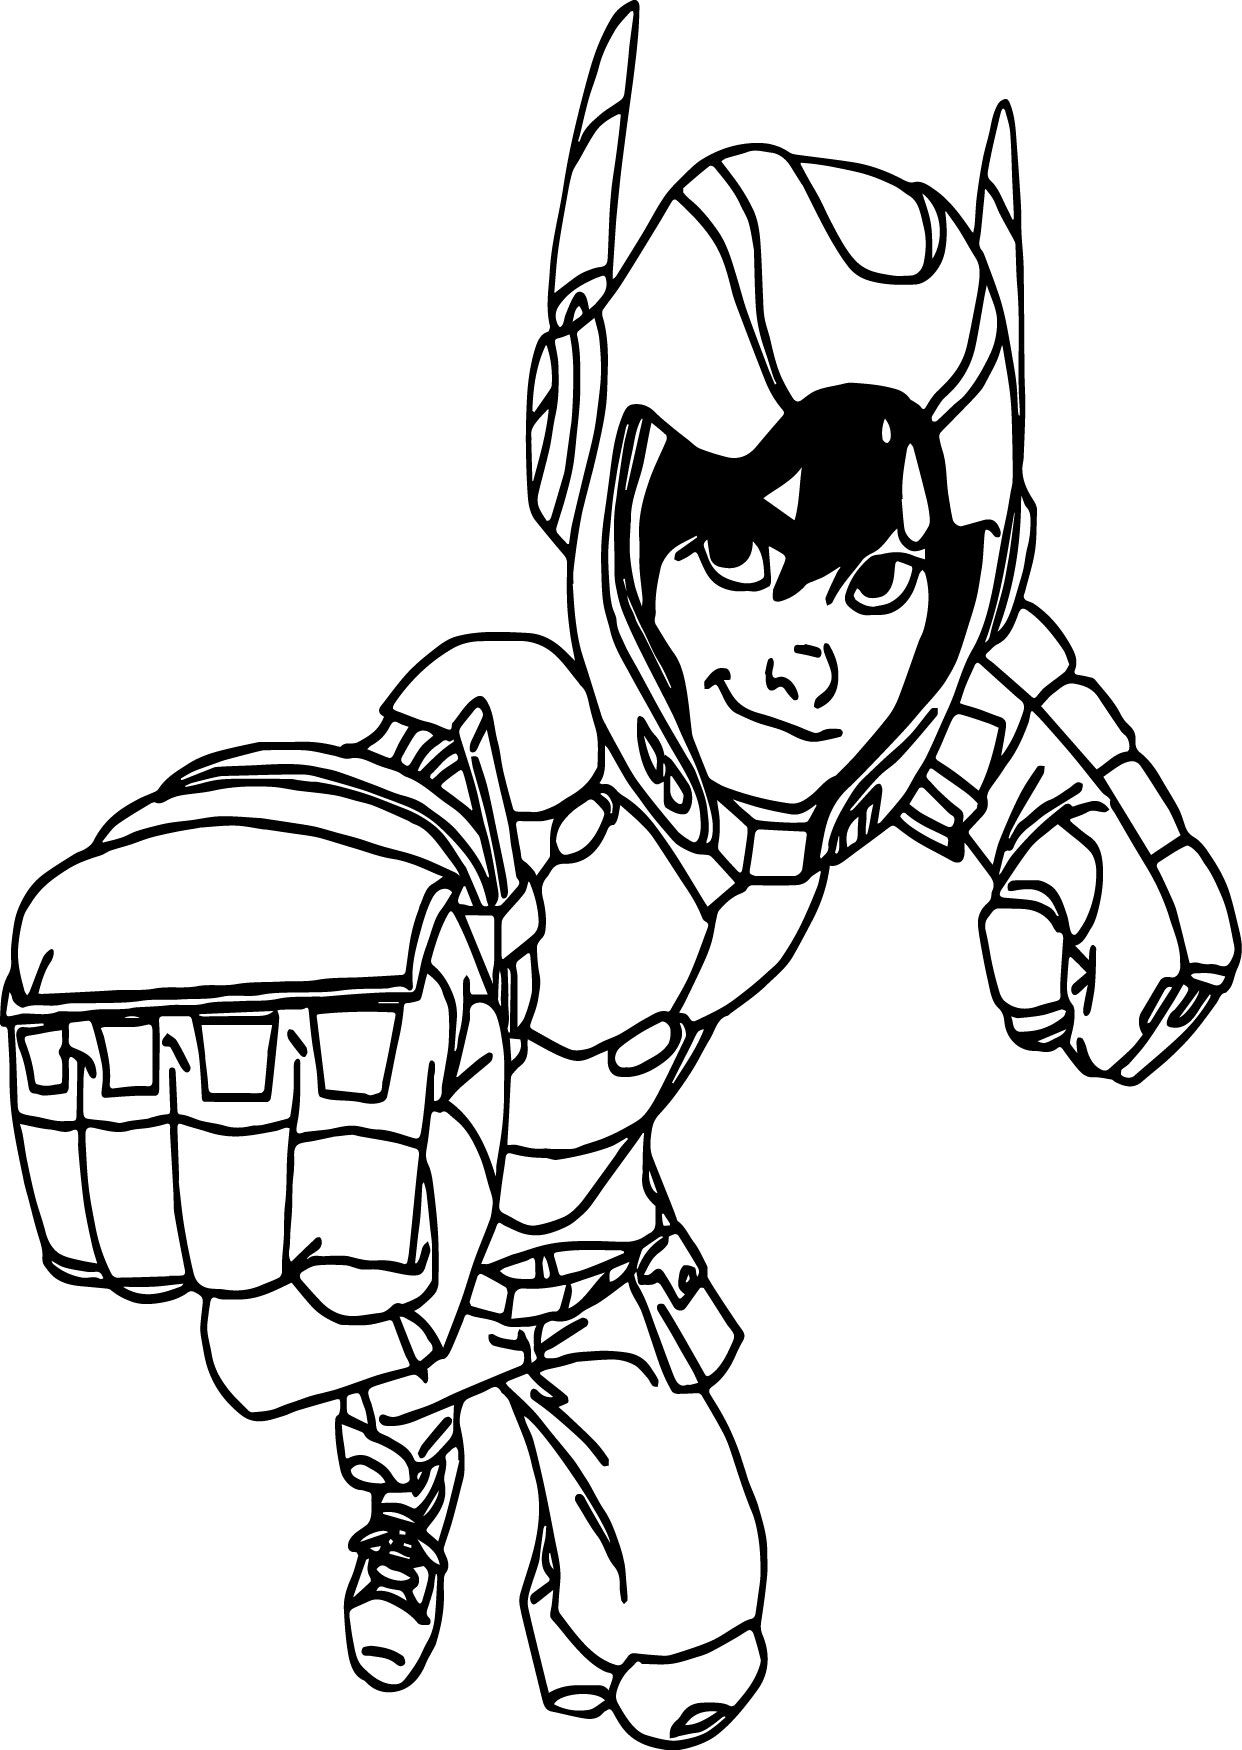 Hero 6 Coloring Pages